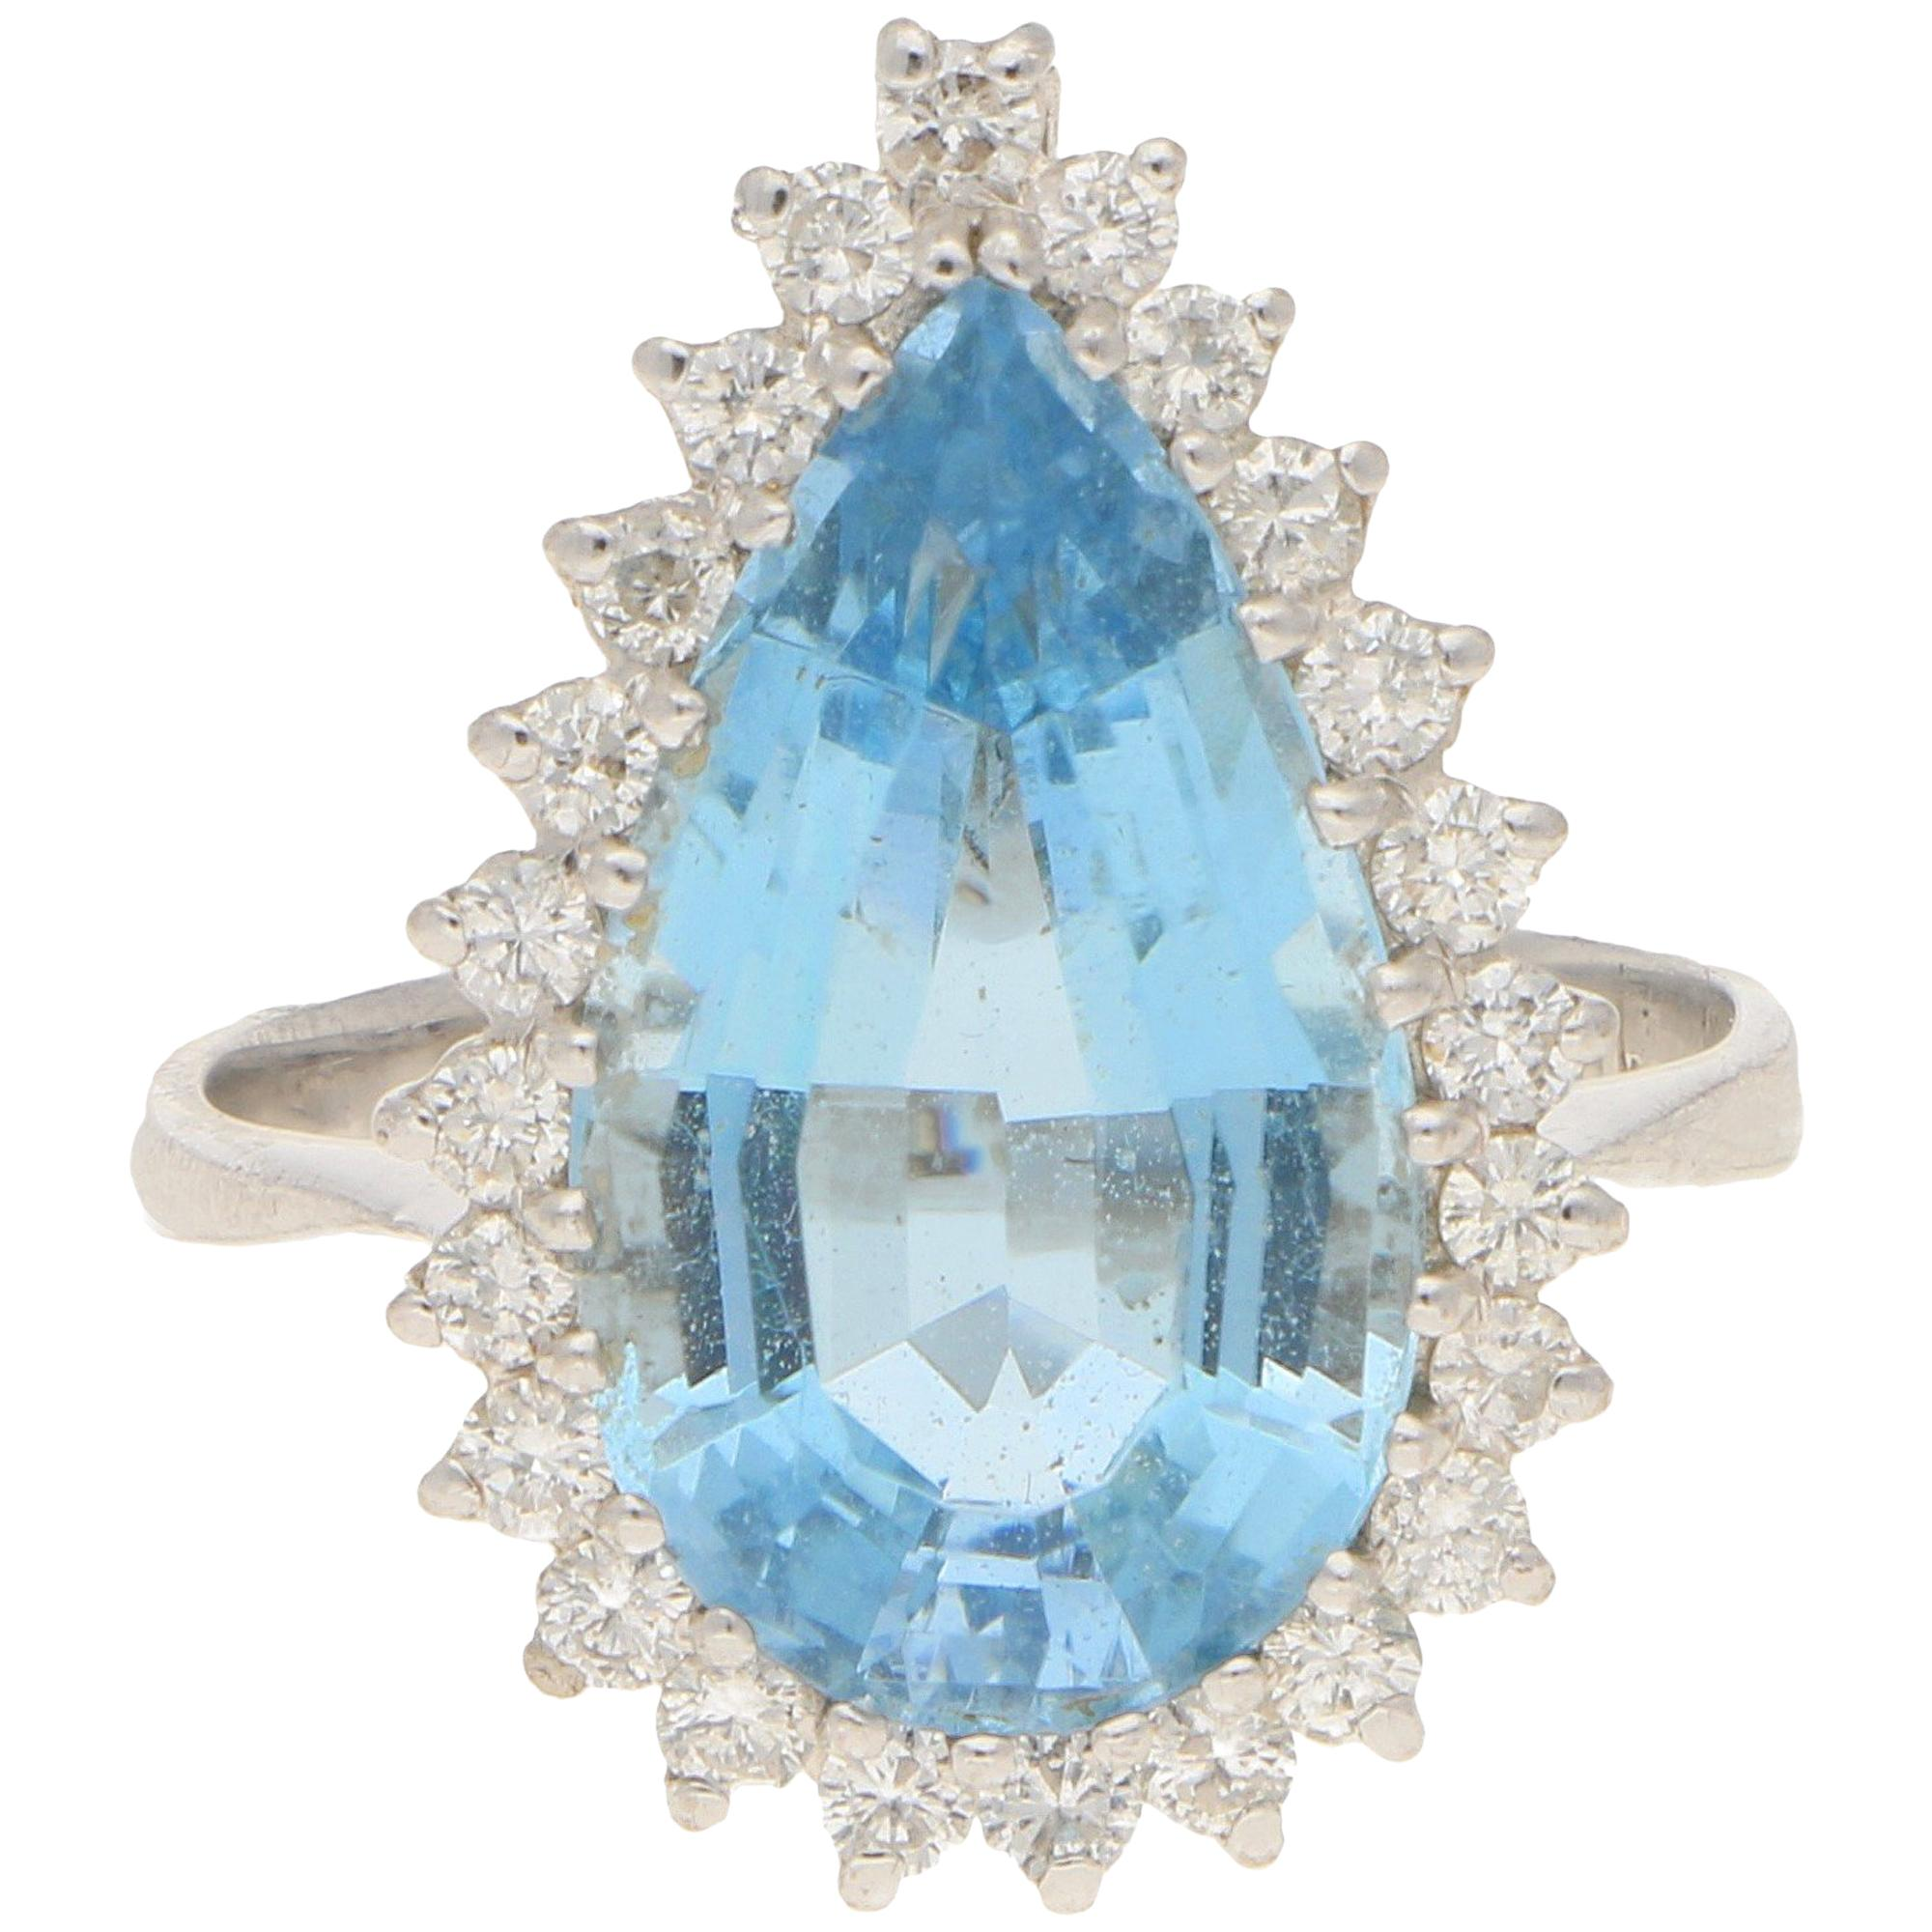 Aquamarine and Diamond Pear Shaped Cluster Cocktail Ring in 18k White Gold